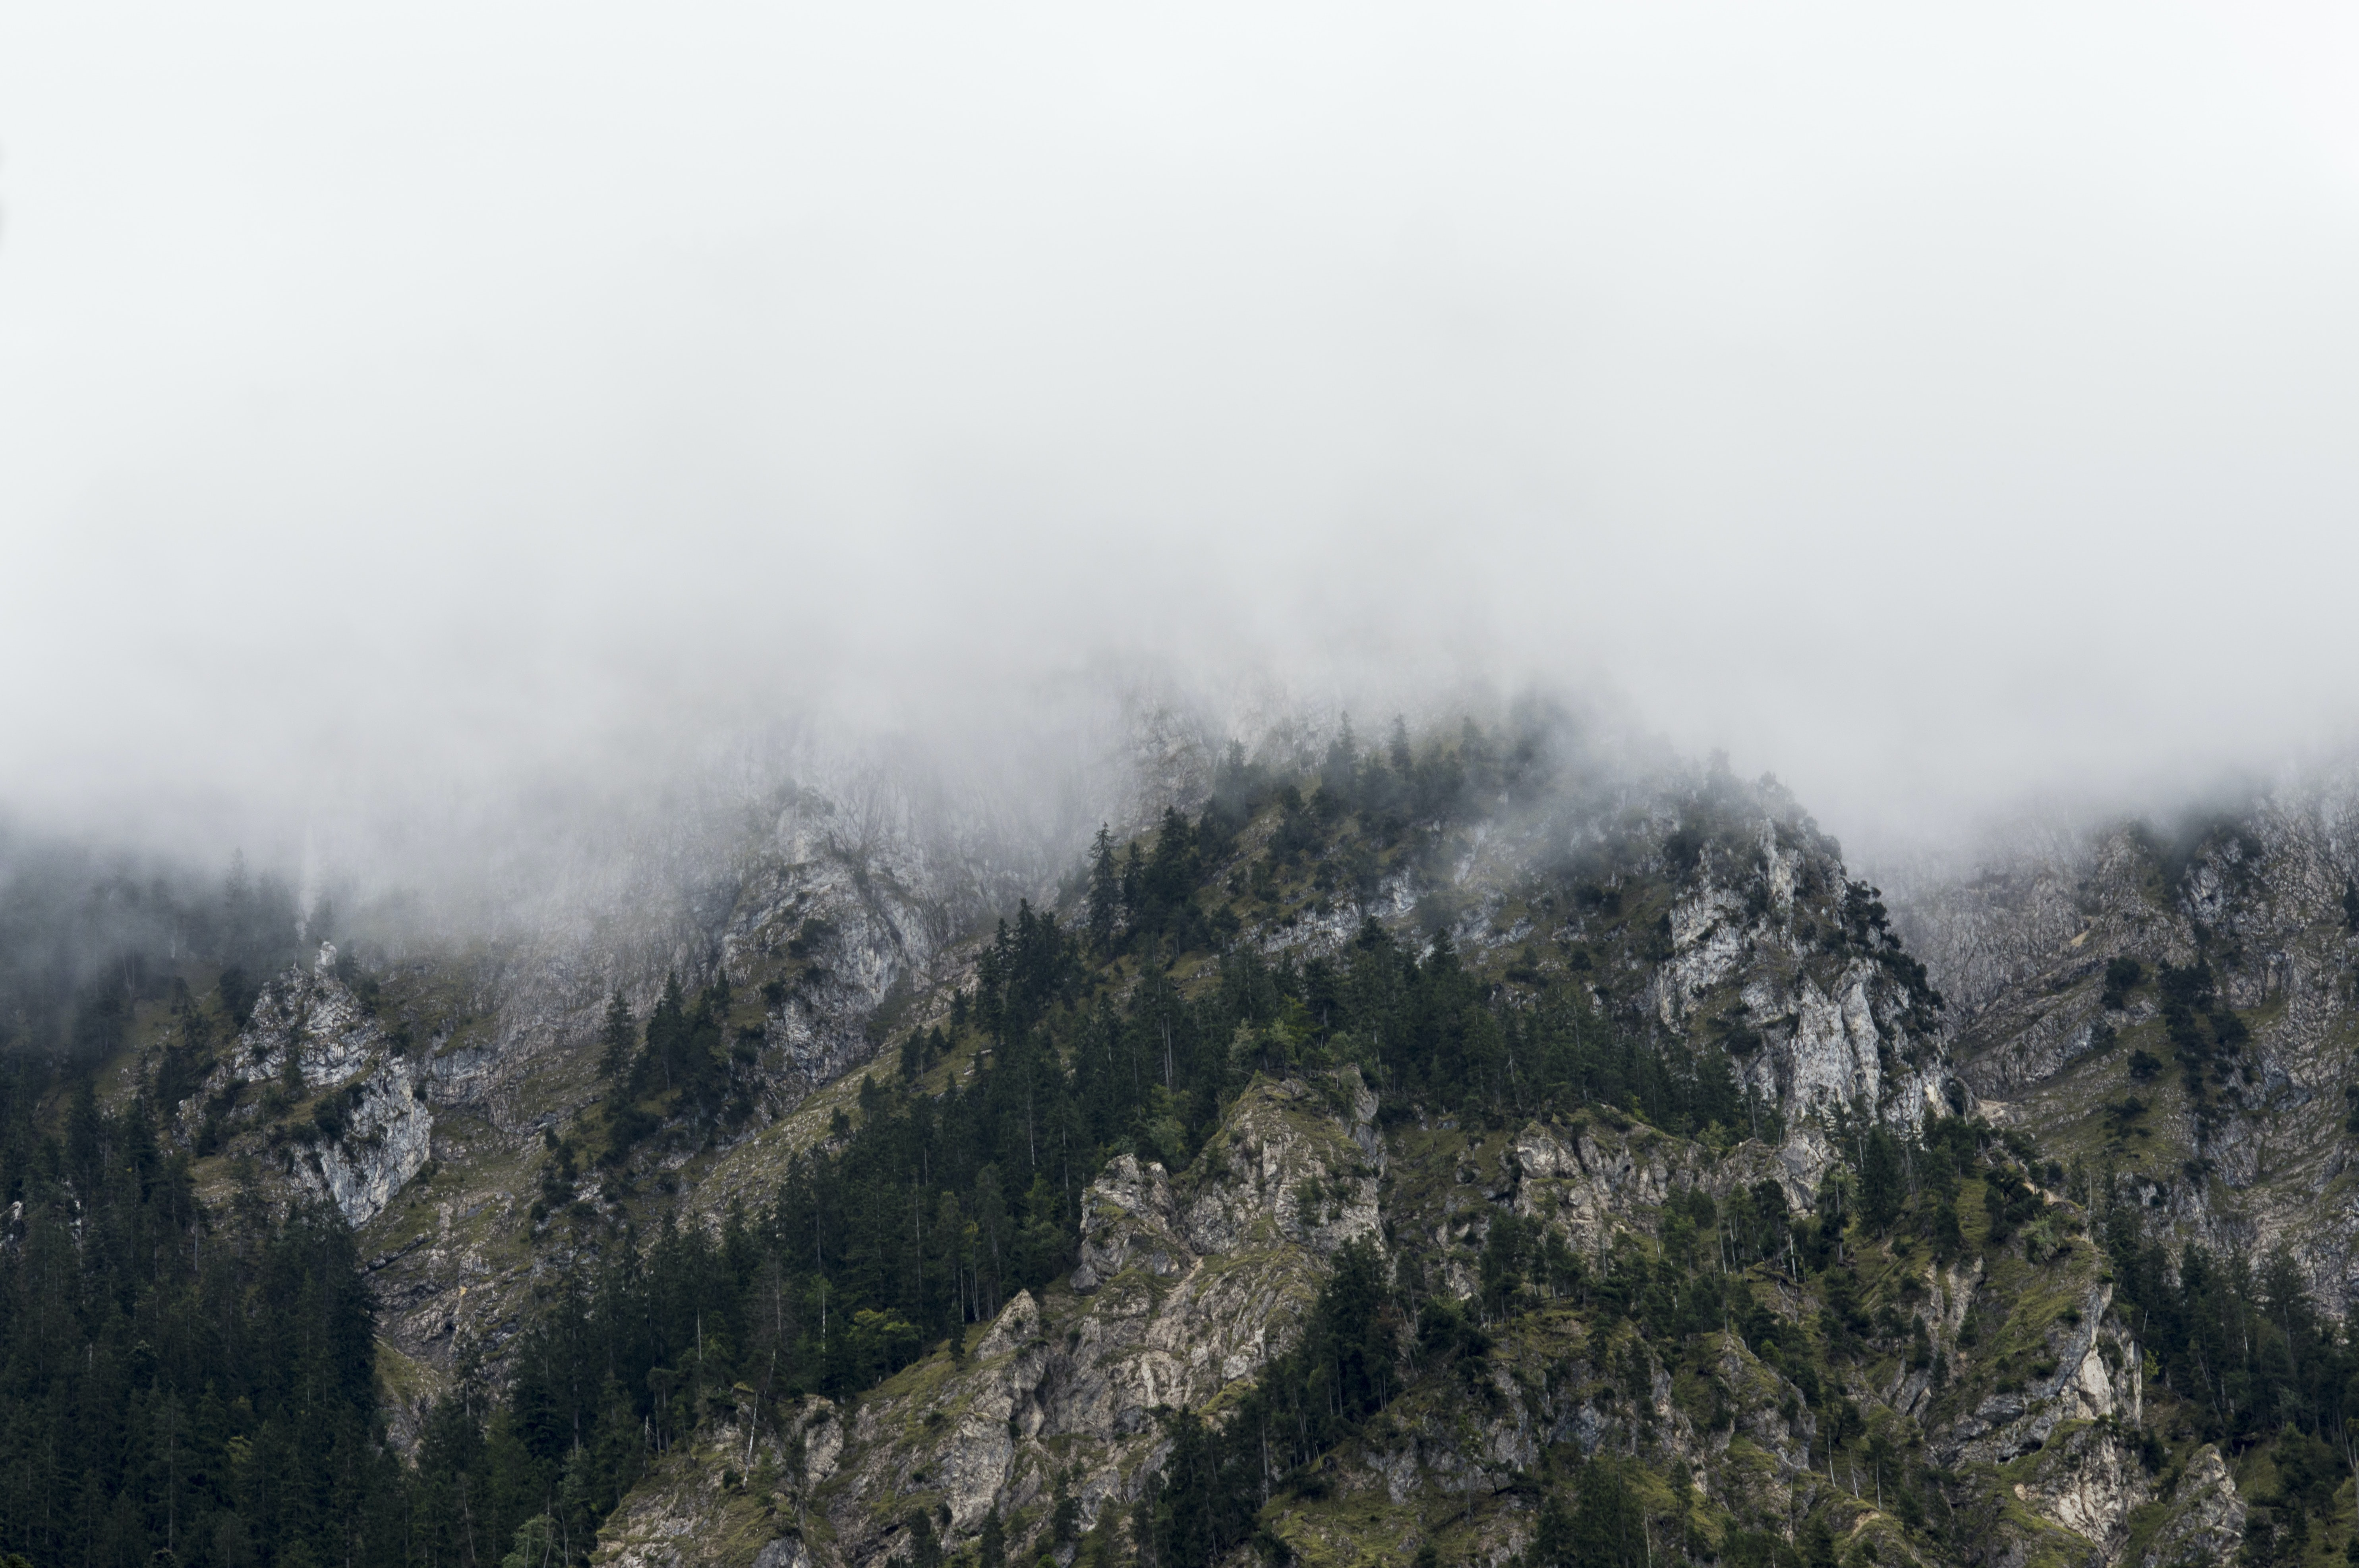 Craggy ridges covered in a thick fog in Tyrol